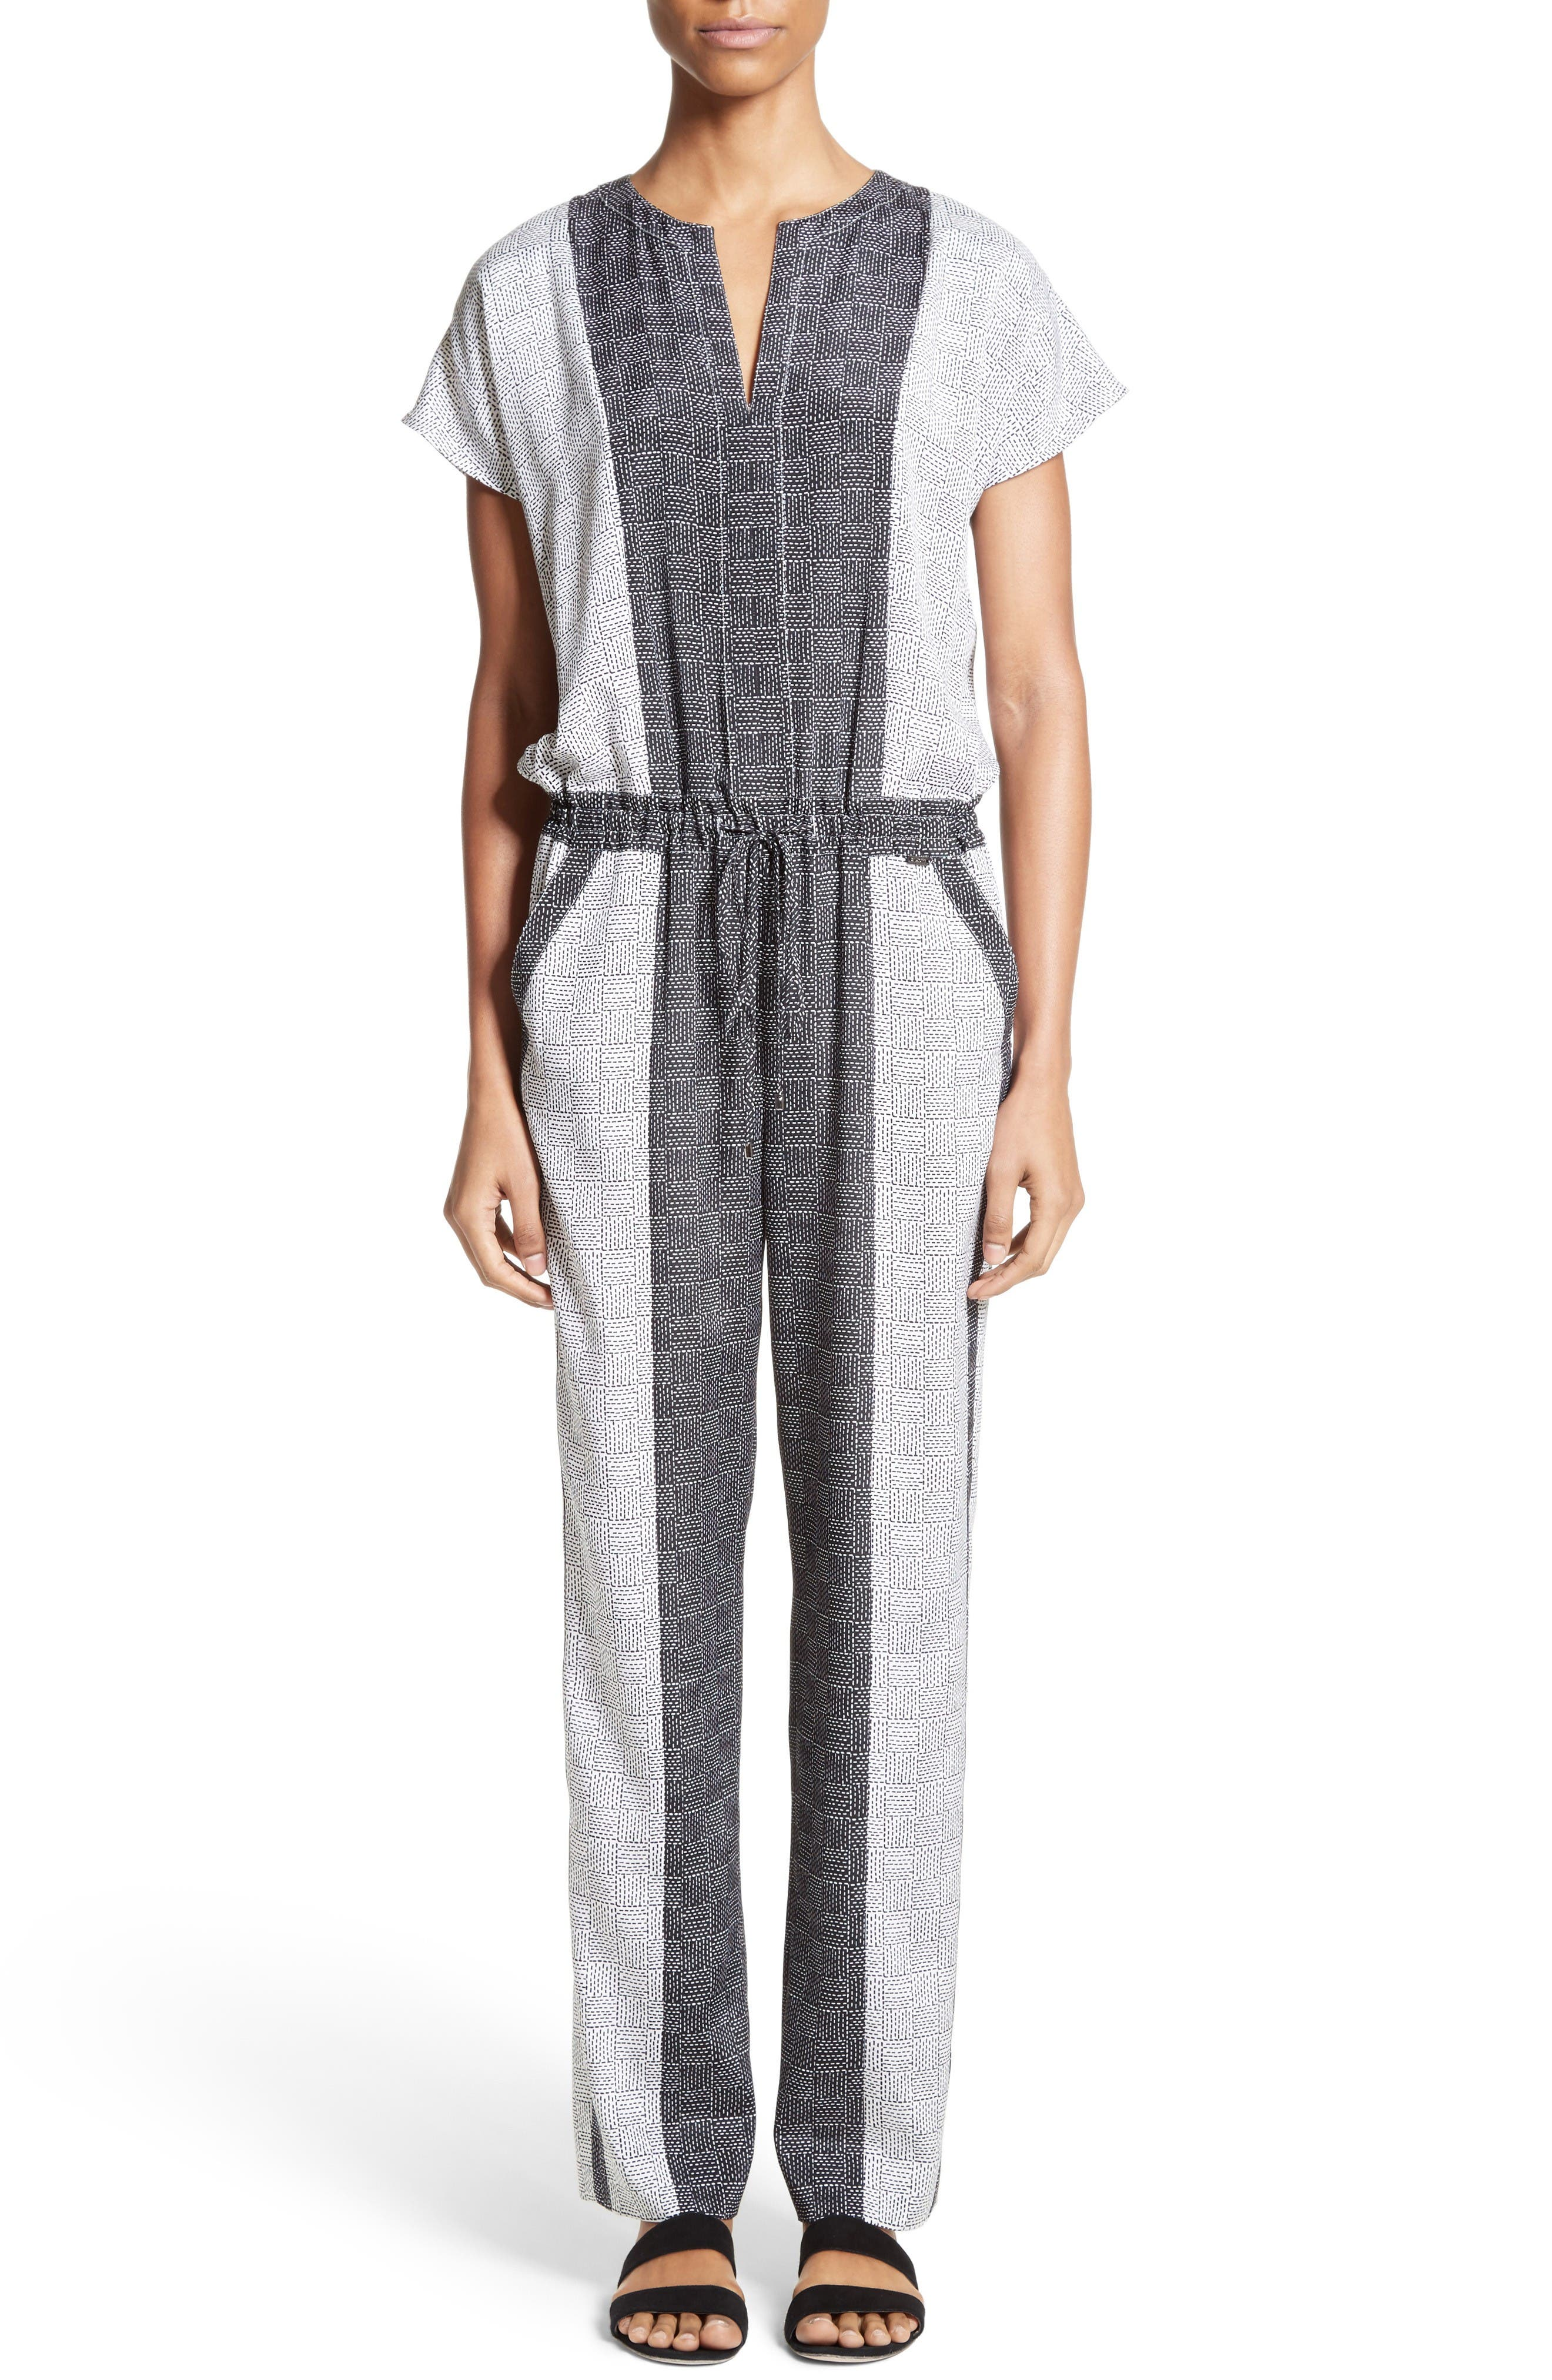 Stitch Print Stretch Silk Jumpsuit,                         Main,                         color, Bianco/ Caviar